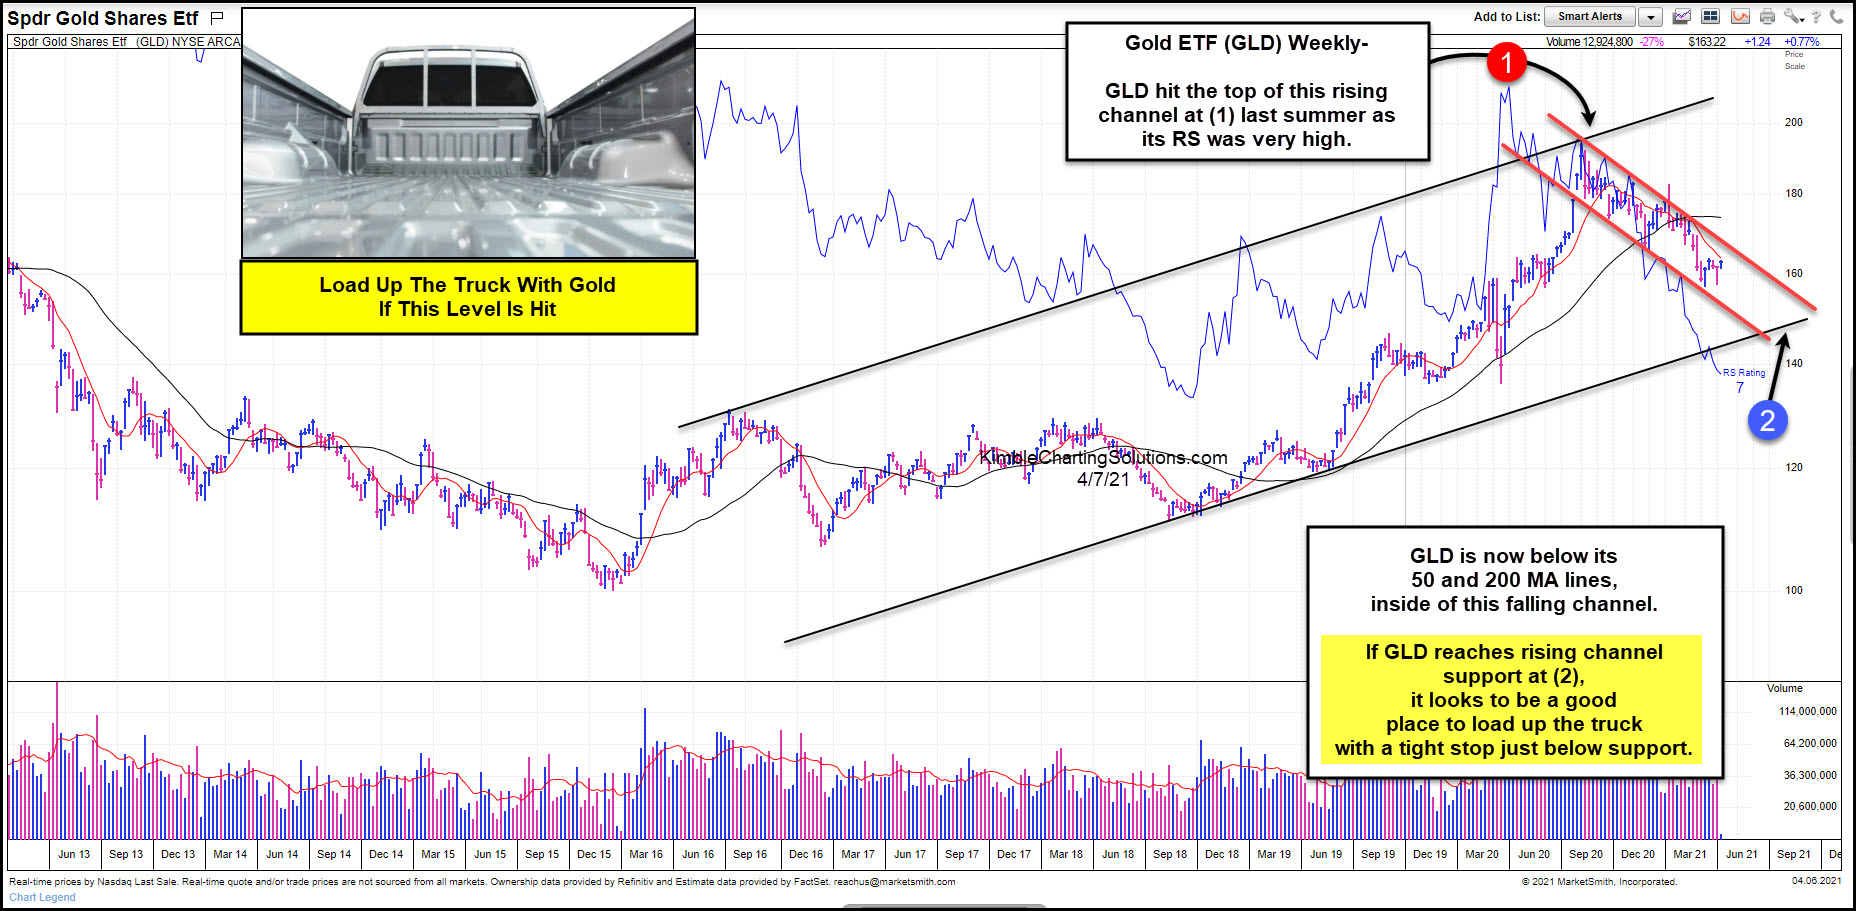 GOLD ETF Weekly Chart